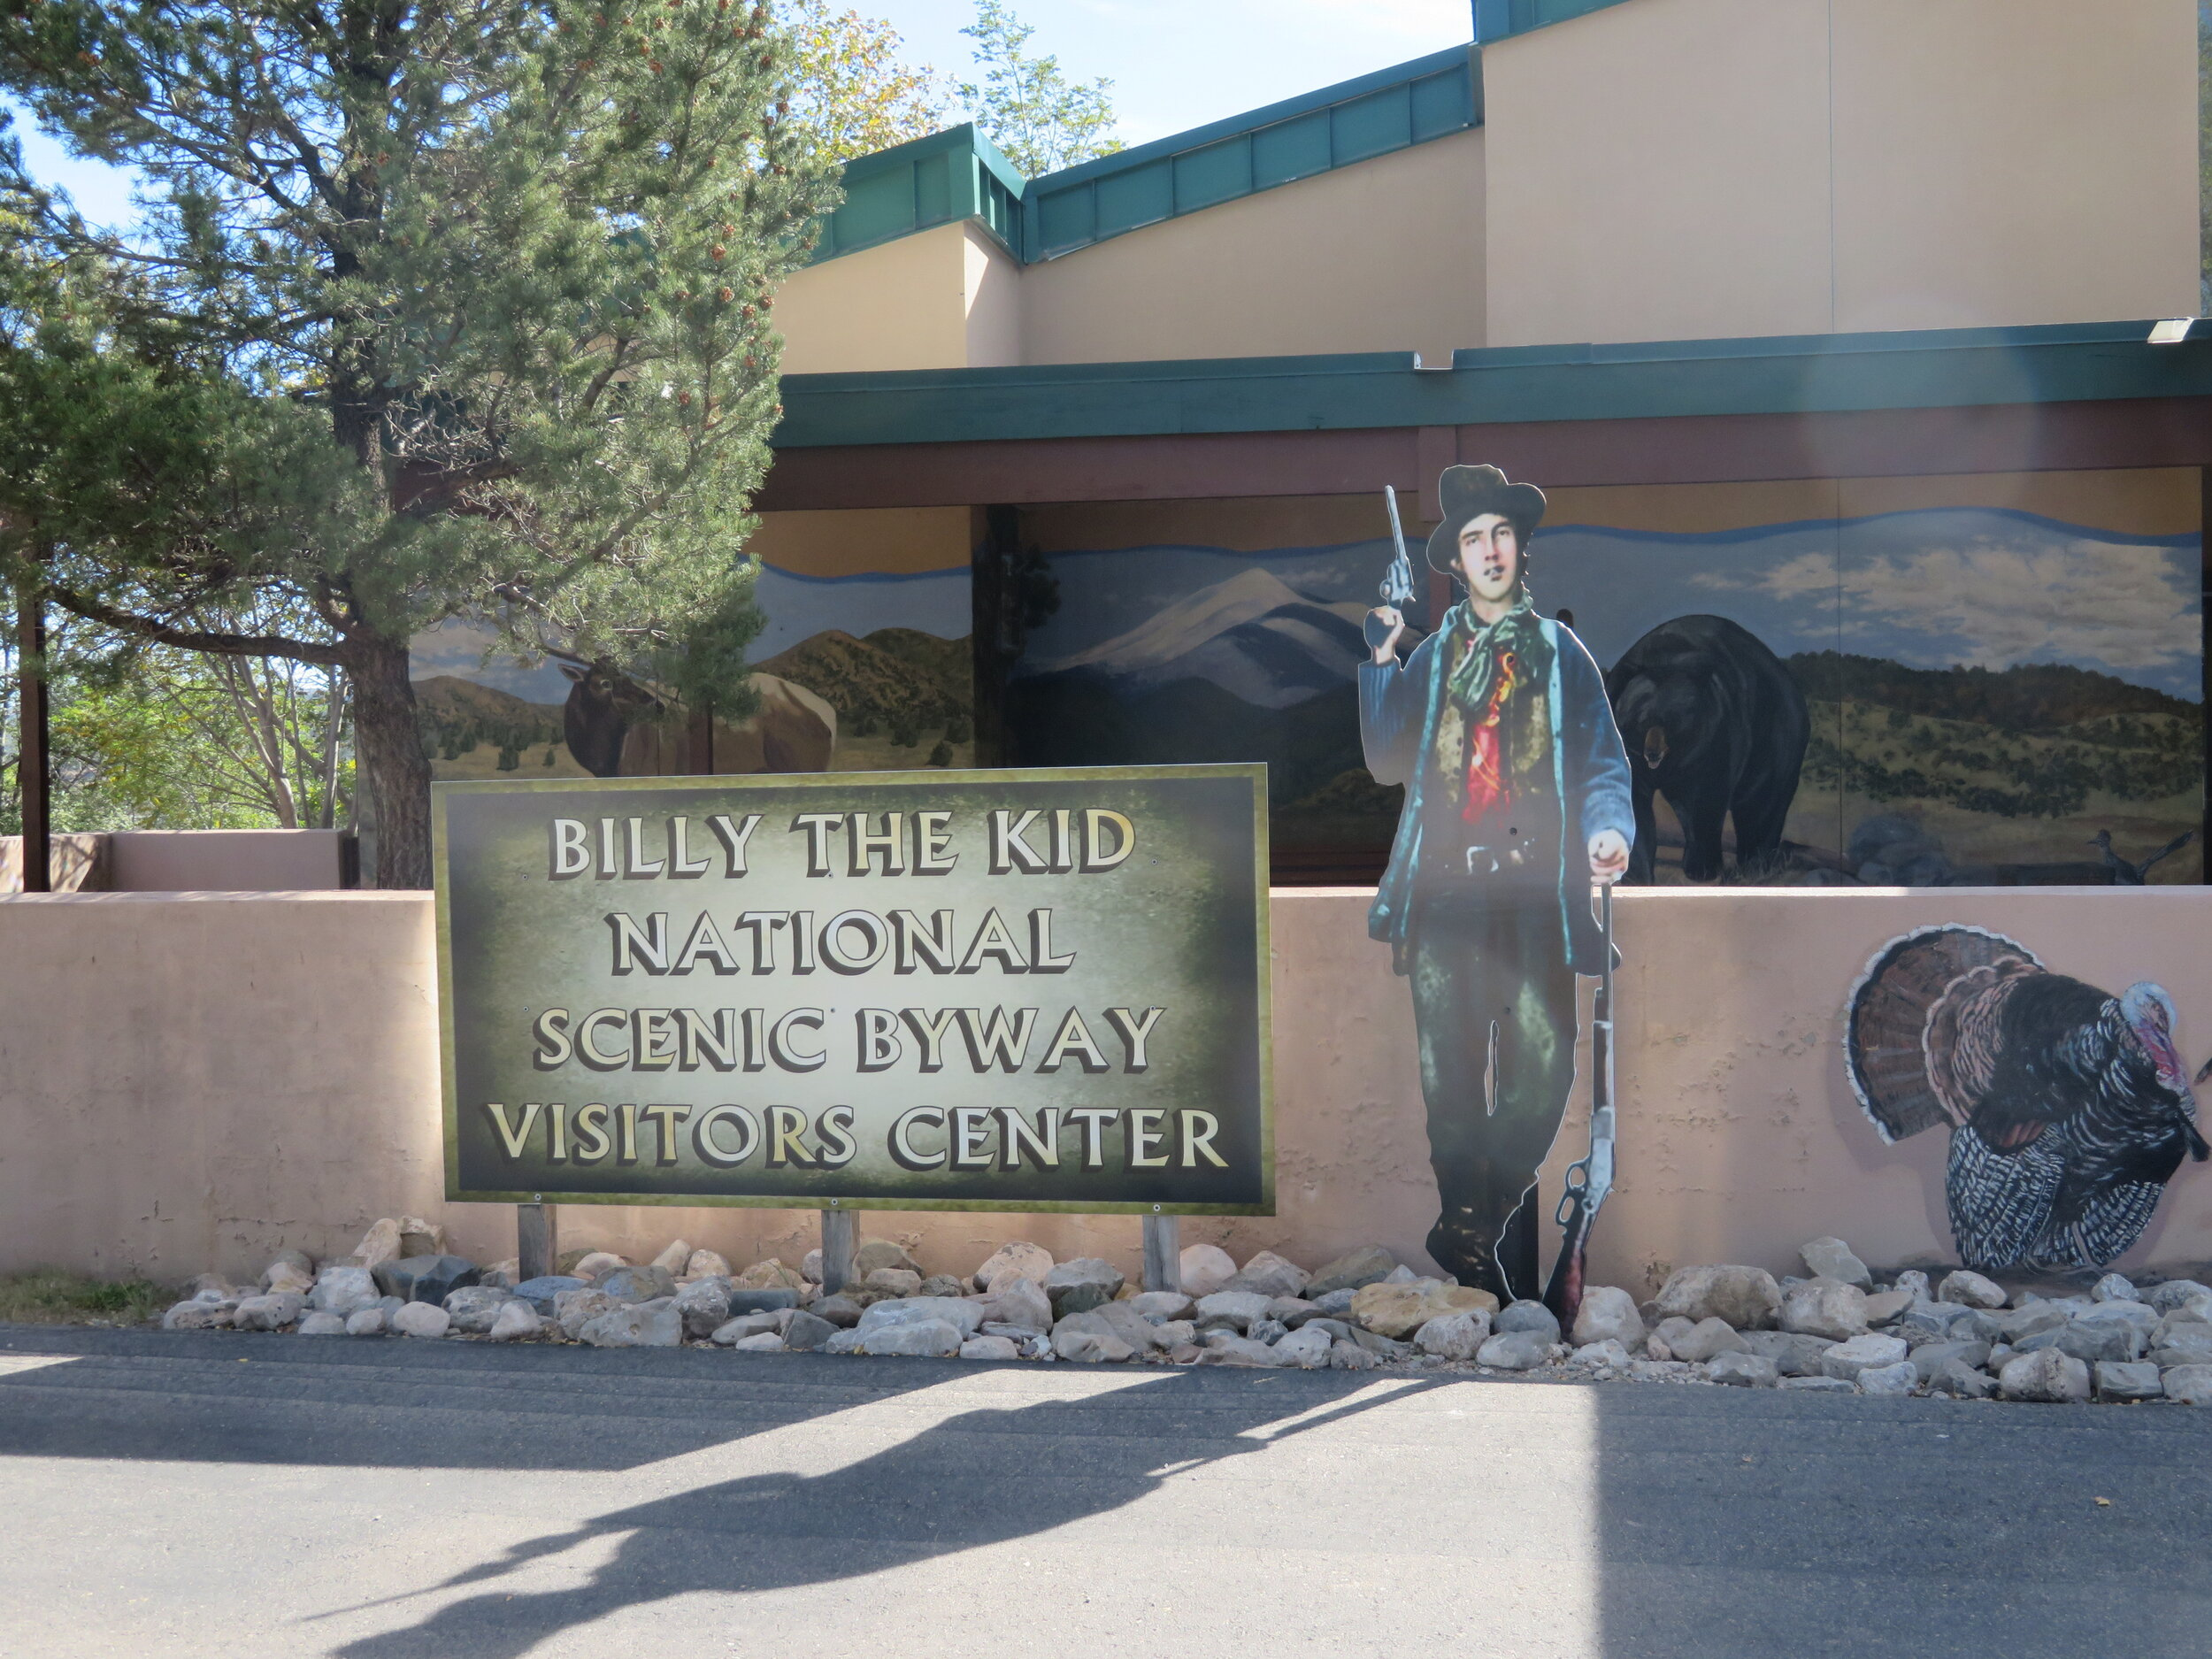 Billy the Kid natl scenic byway visitor ctr.JPG